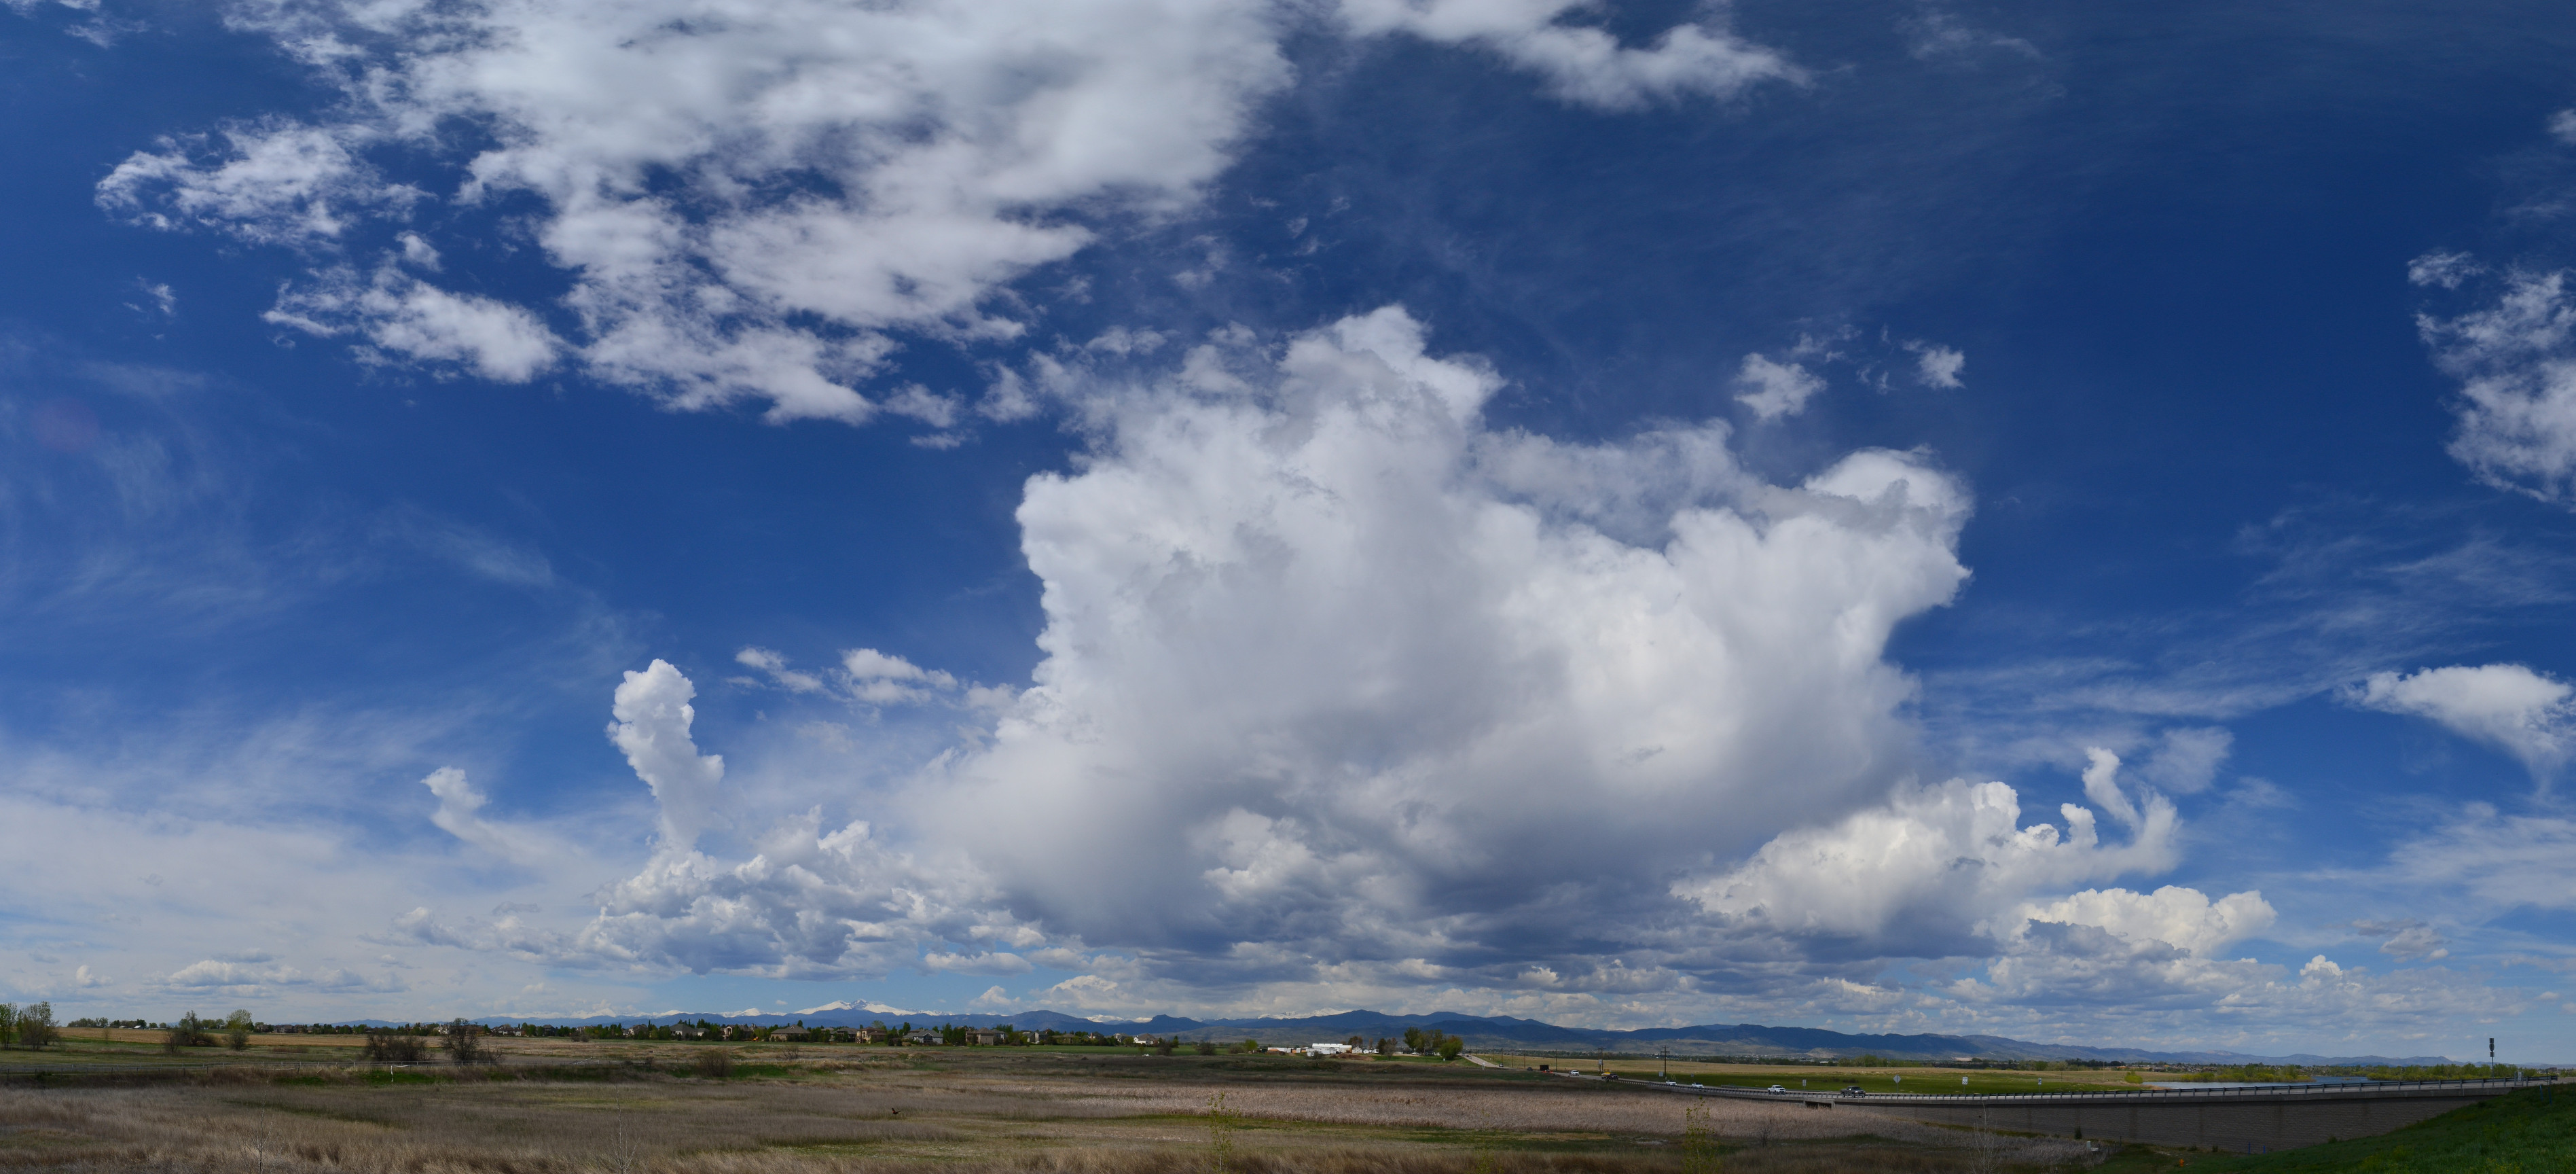 Summer Morning Clouds 2015 05 03 Stratus Colorado Cloud Pictures